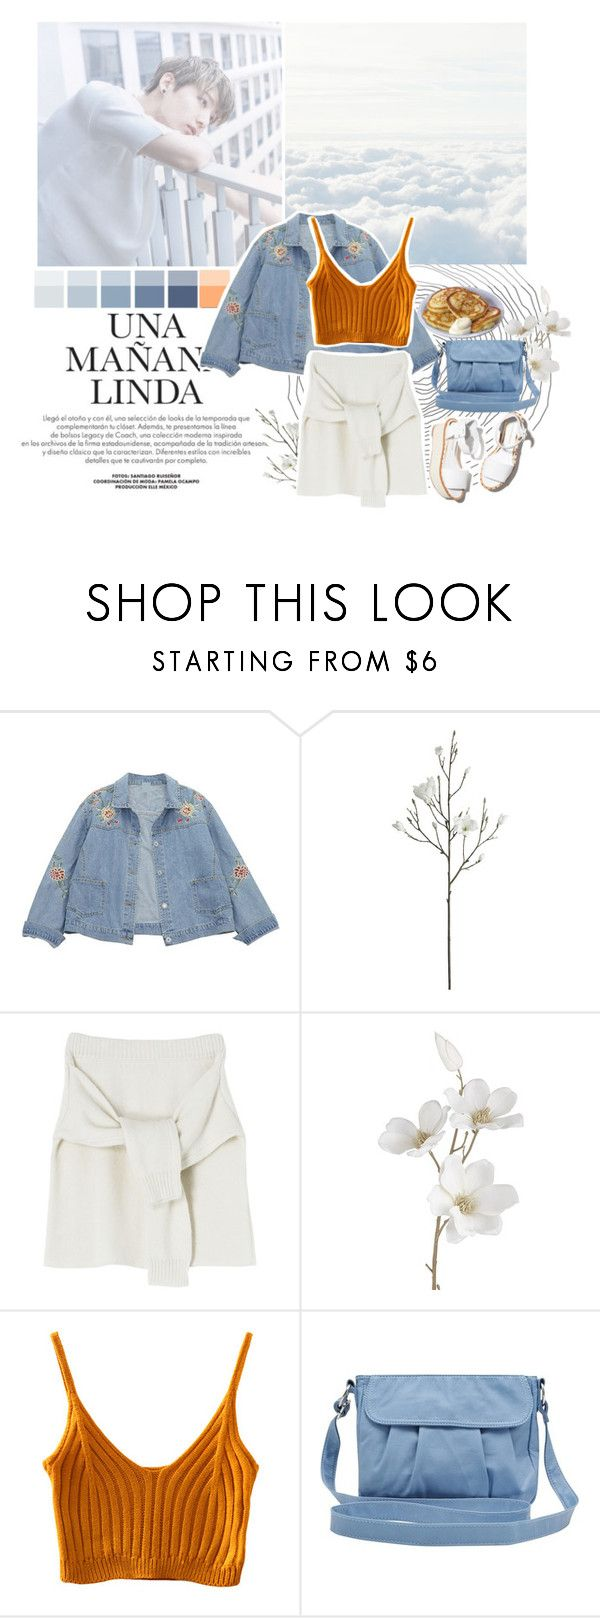 """Jungkook: Oitavo Andar"" by supremebts ❤ liked on Polyvore featuring Seed Design, Chicnova Fashion, Crate and Barrel, Paloma Barceló, Pier 1 Imports and M&Co"